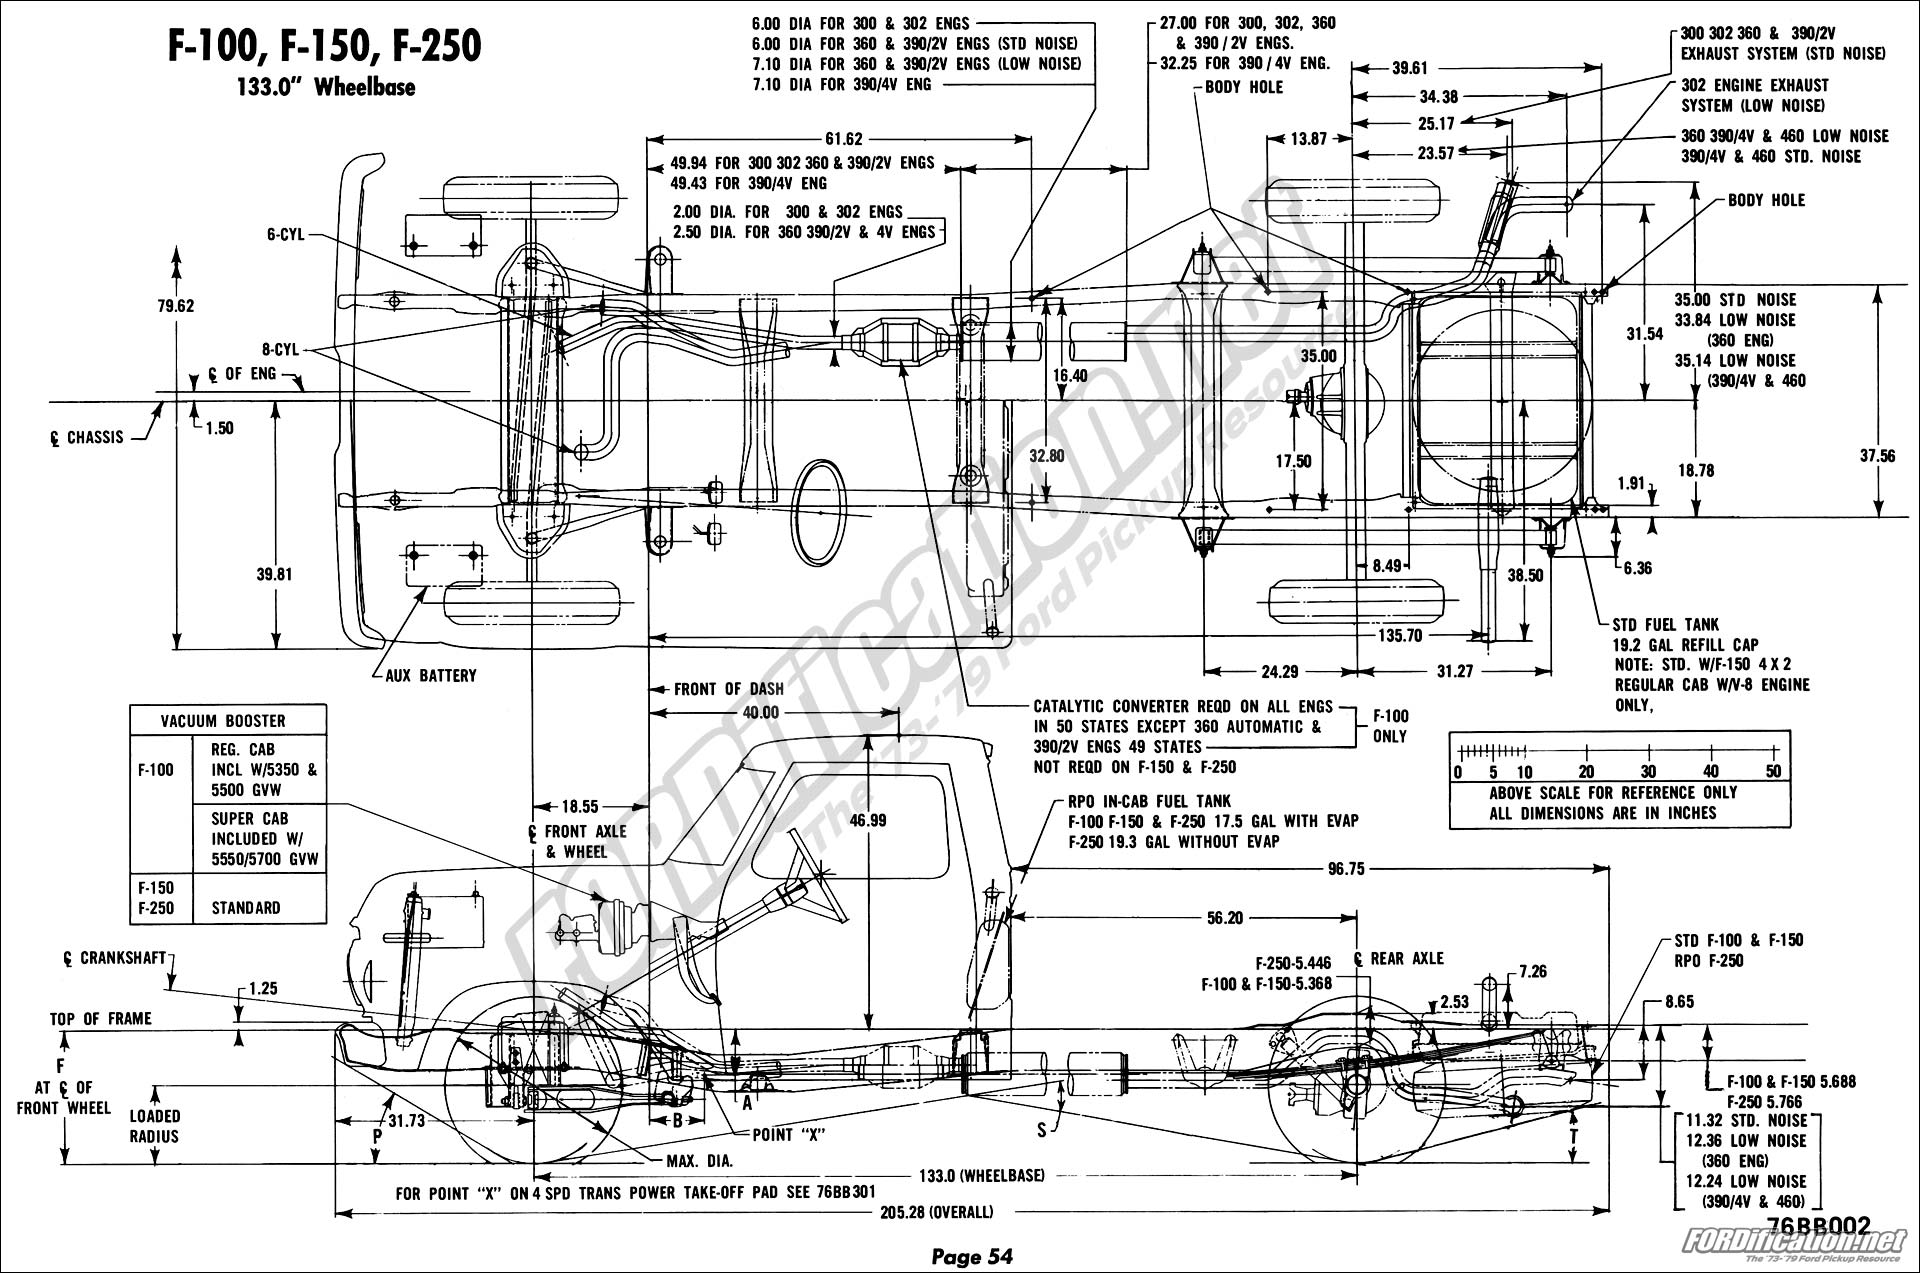 Truck Frame Schematics Wire Center Mack Wiring Harness F350 Diagram Diagrams U2022 Rh Seniorlivinguniversity Co Chevrolet 93 Chevy Instrument Panel Schematic